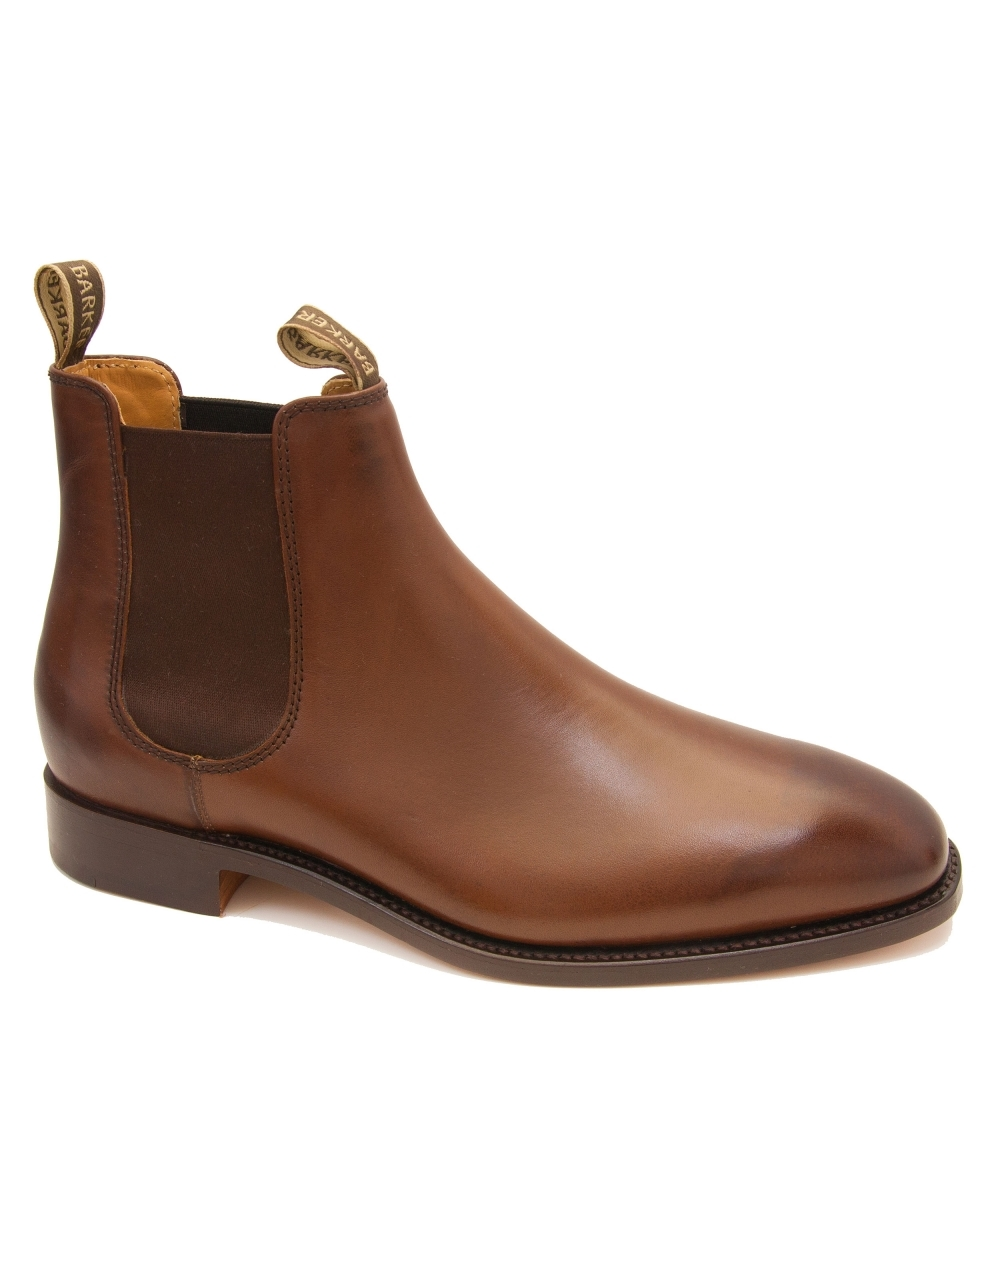 9996faefcf2 Mansfield Leather Chelsea Boot - Walnut